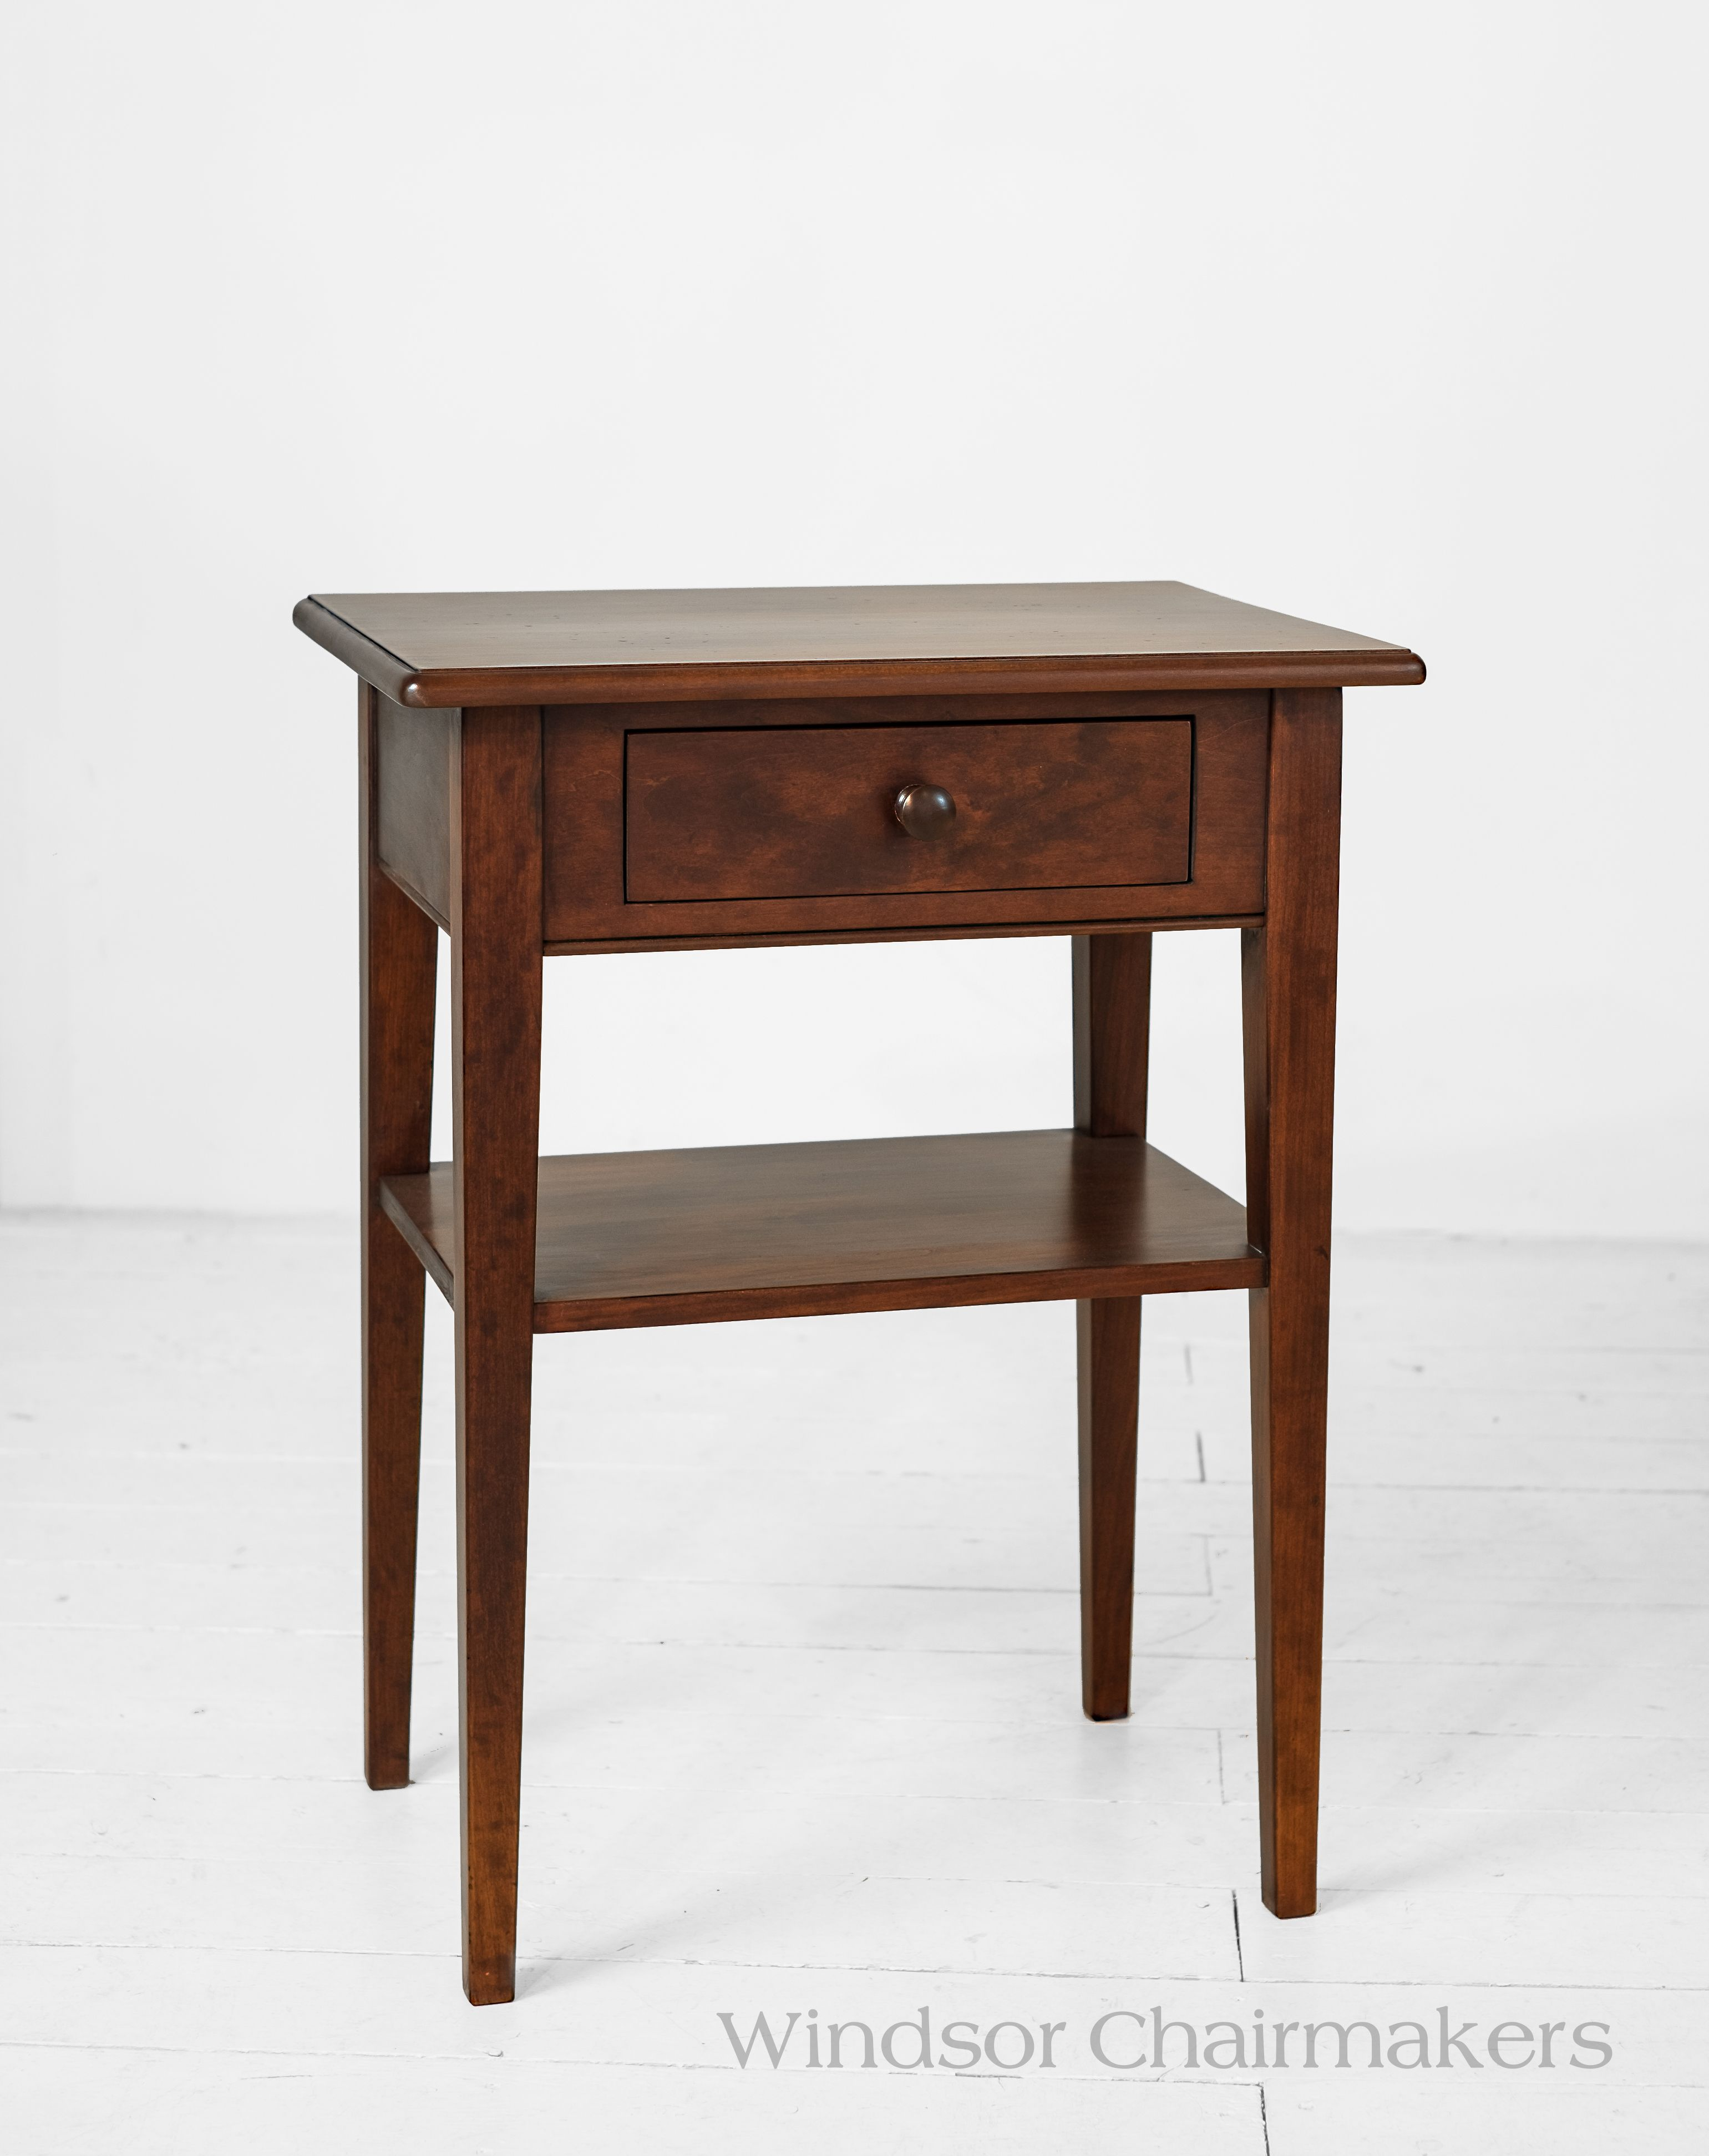 Cottage Bedside Table 23u201d X 16u201d X 30u201d High Wood Choices: Tiger Maple Or  Cherry